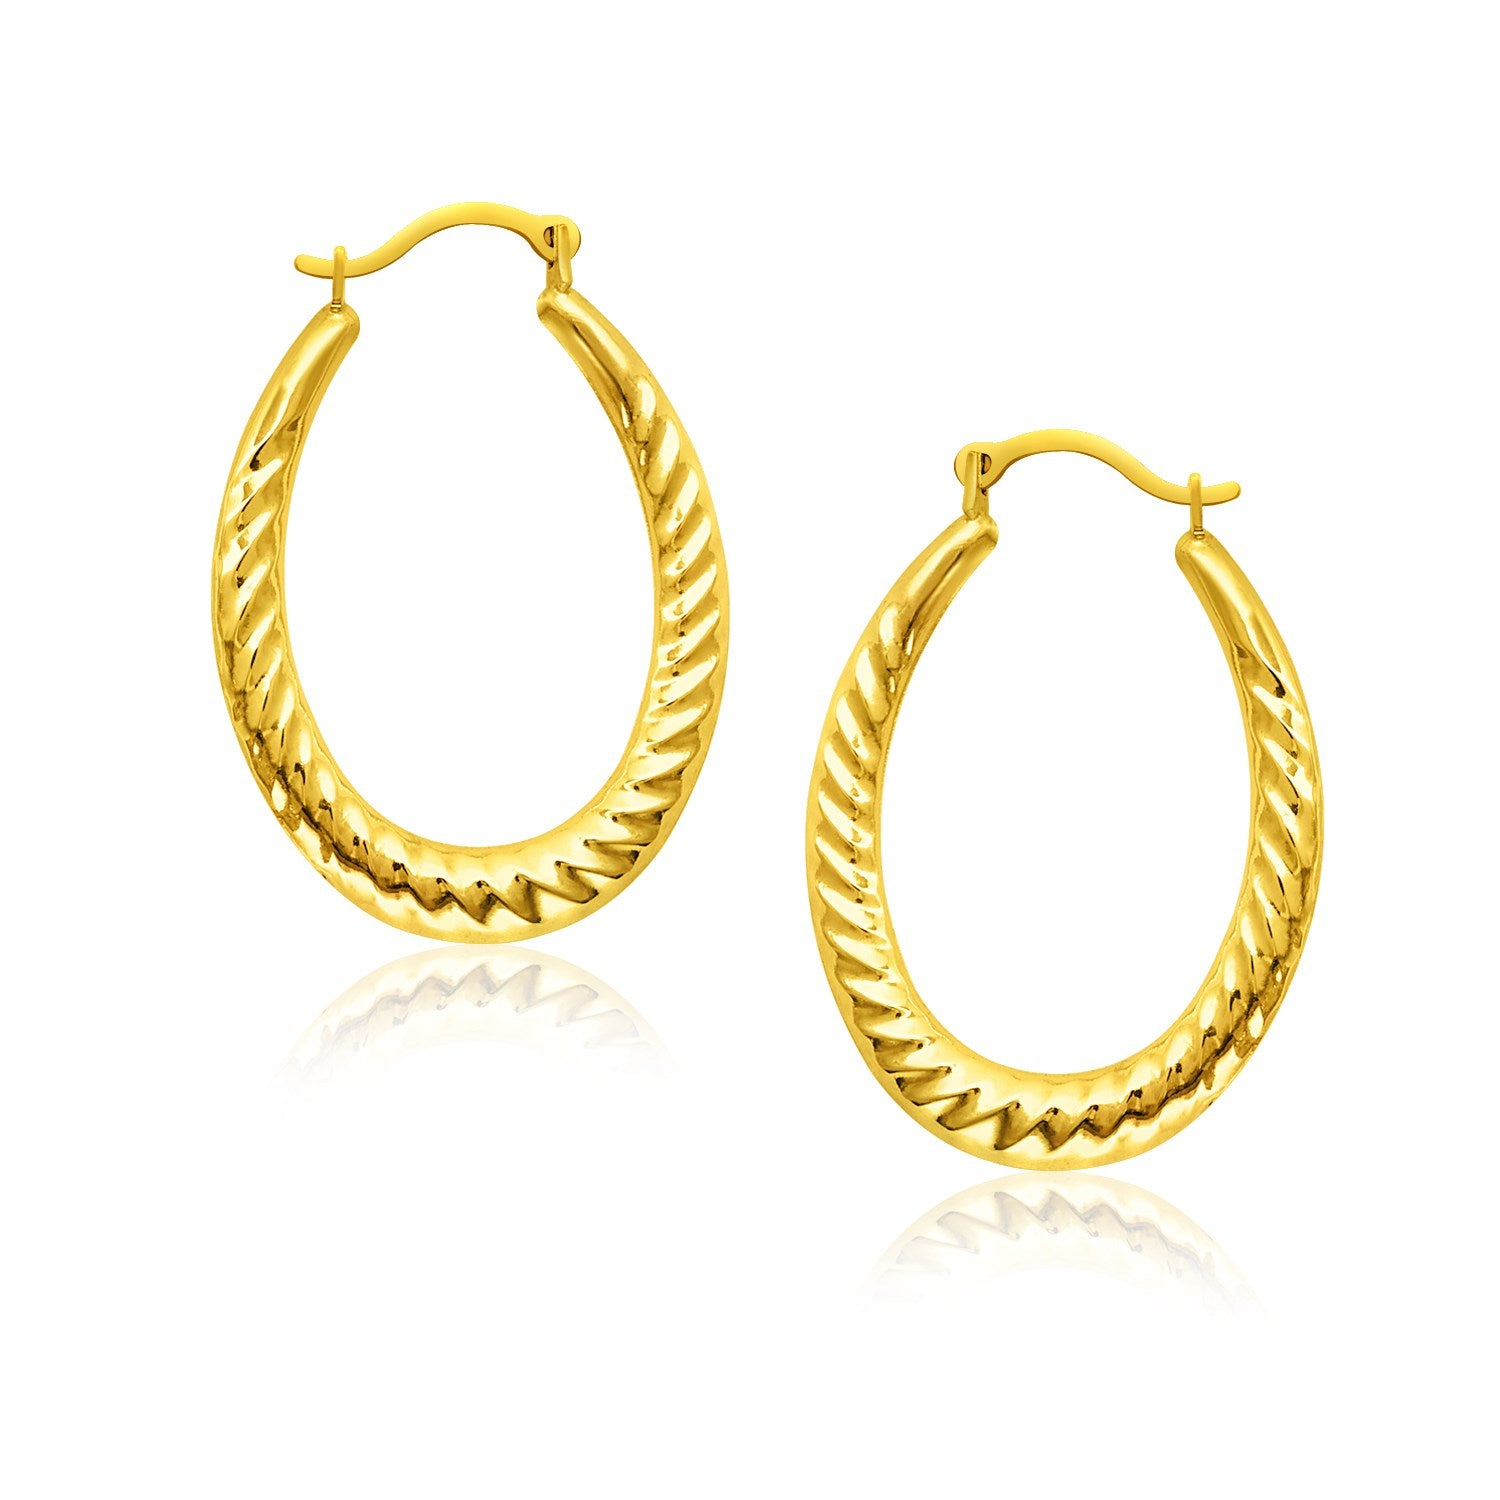 Uniquely Designer Monaco Style 14K Yellow Gold Hoop Earrings with Textured Details